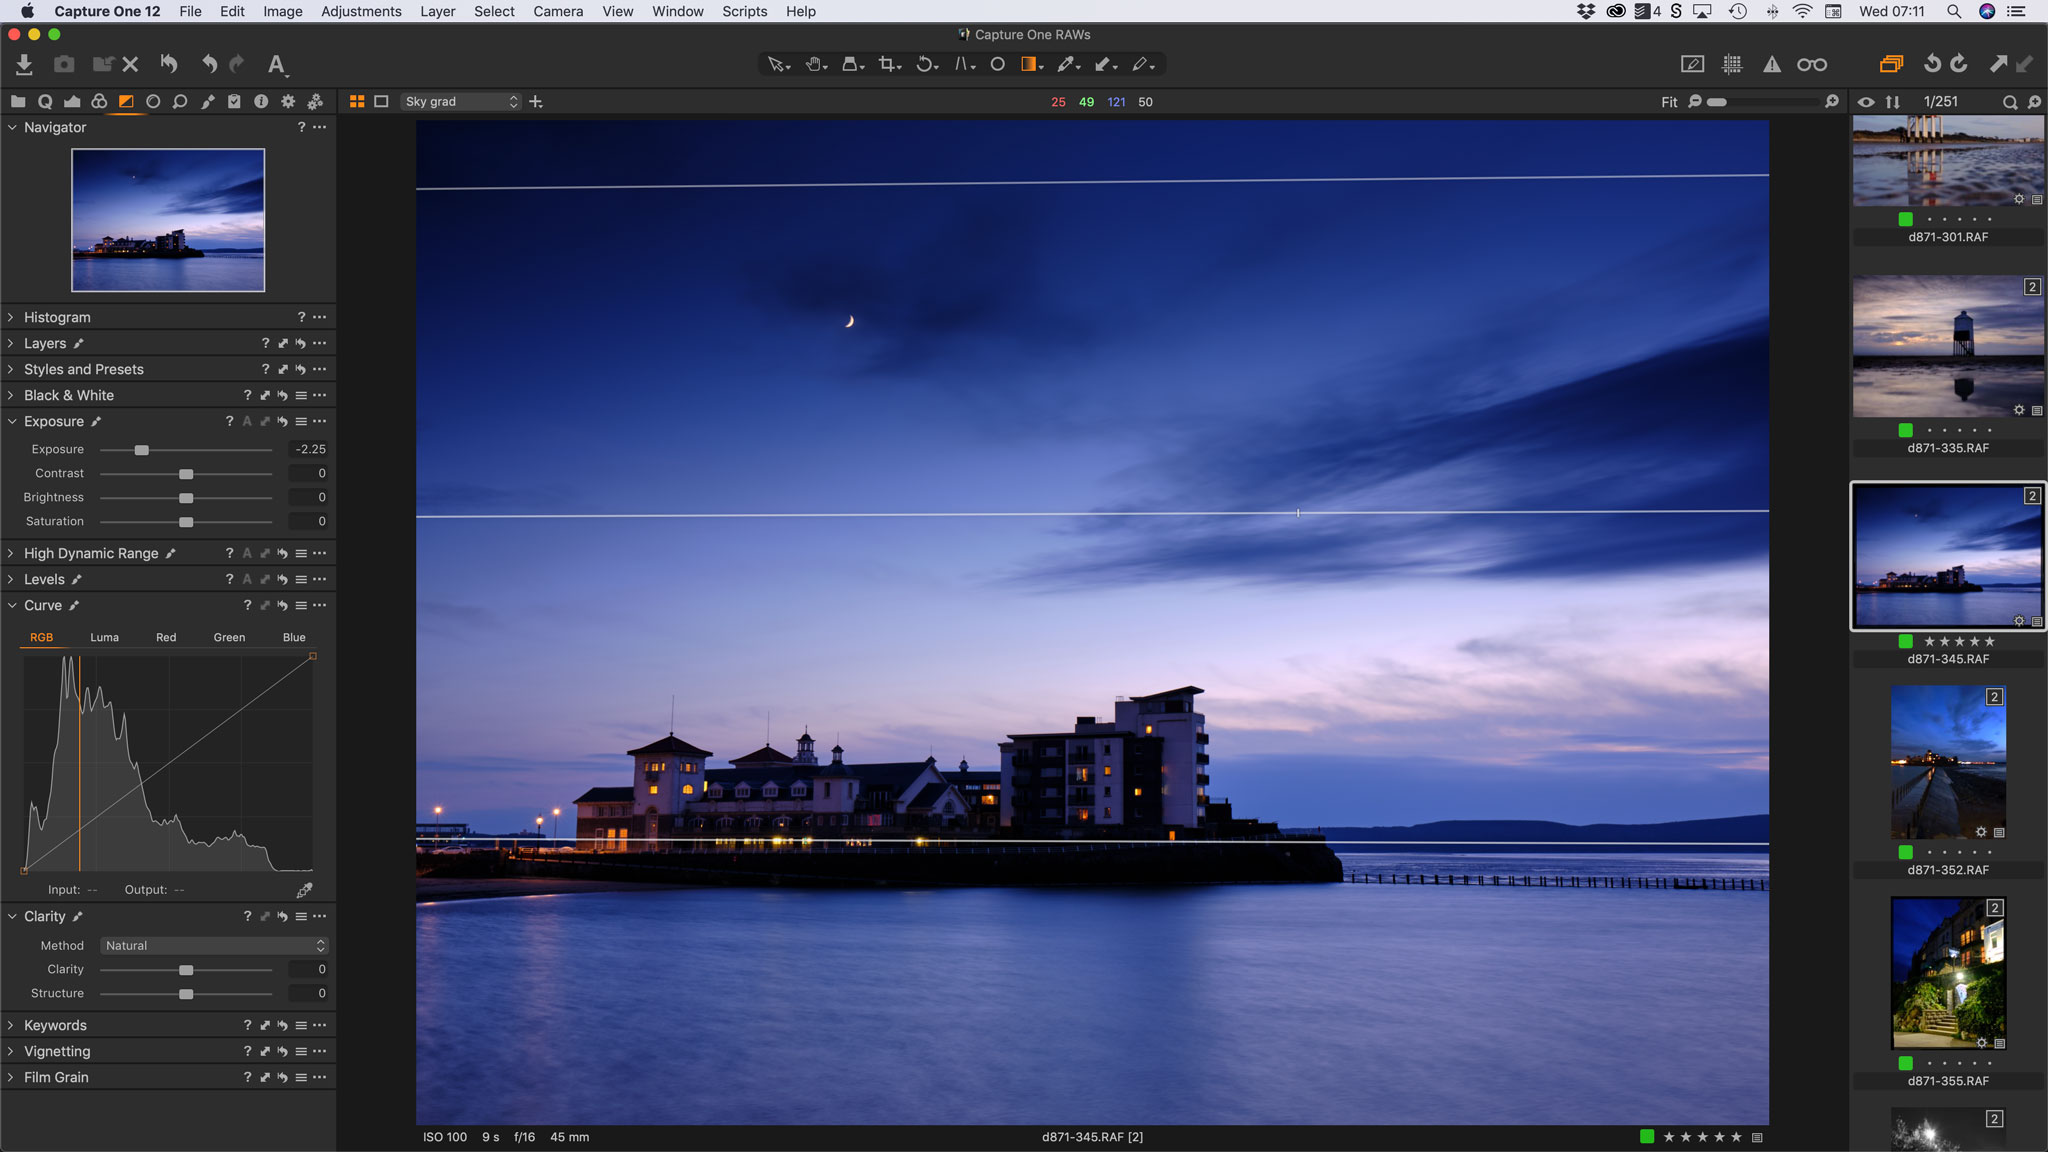 Phase One Capture One Pro 12 review | Life after Photoshop